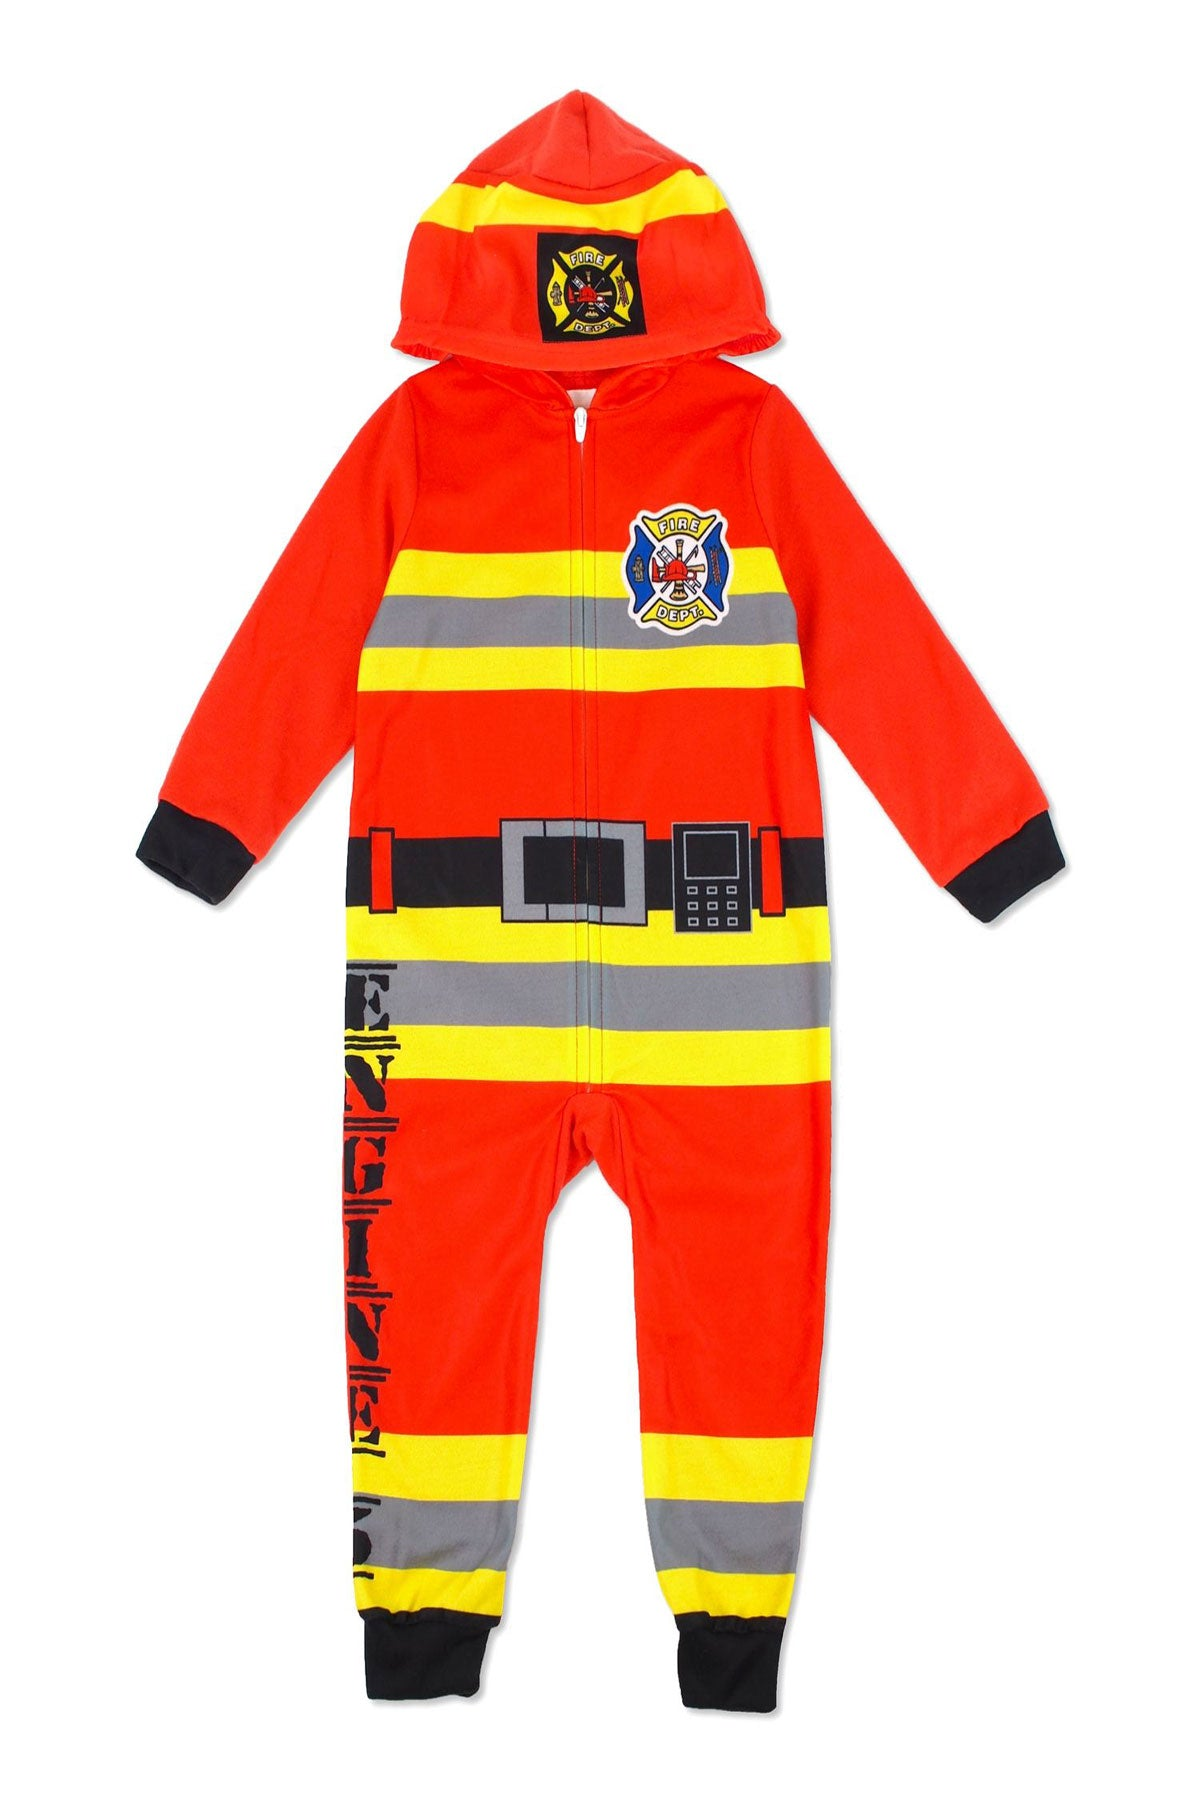 Sleepimini Boys Firefighter Hooded Blanket Sleeper, Red